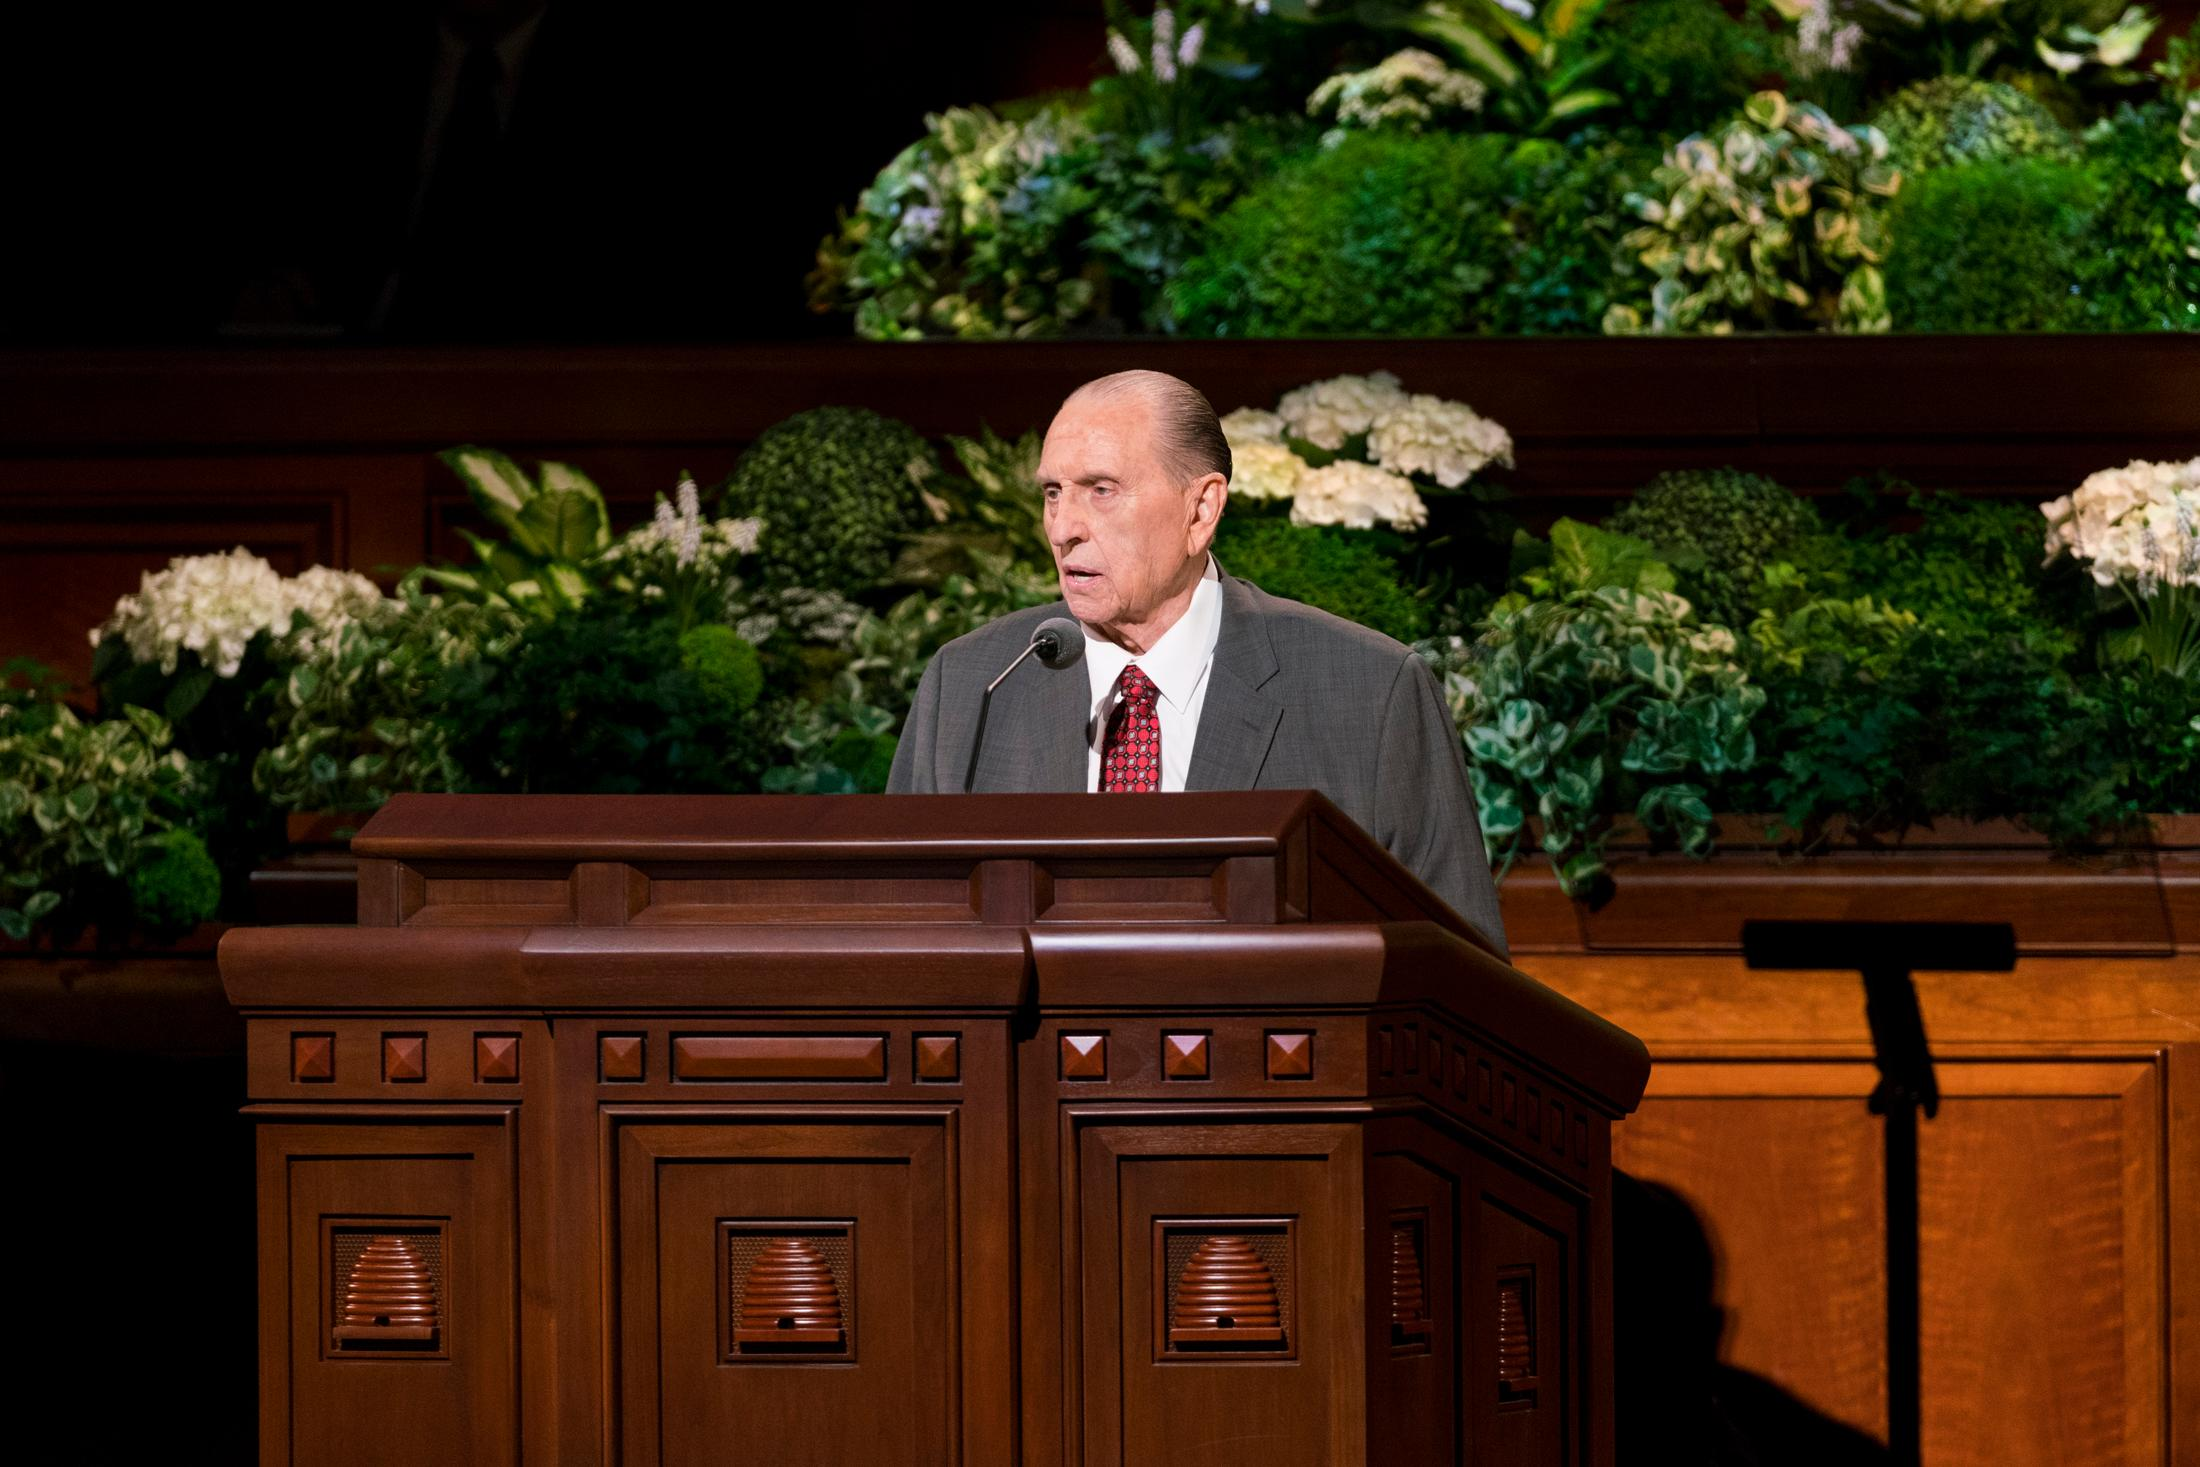 President Monson speaks at the April 2017 general conference. (Photo: MormonNewsroom.org)<p></p>